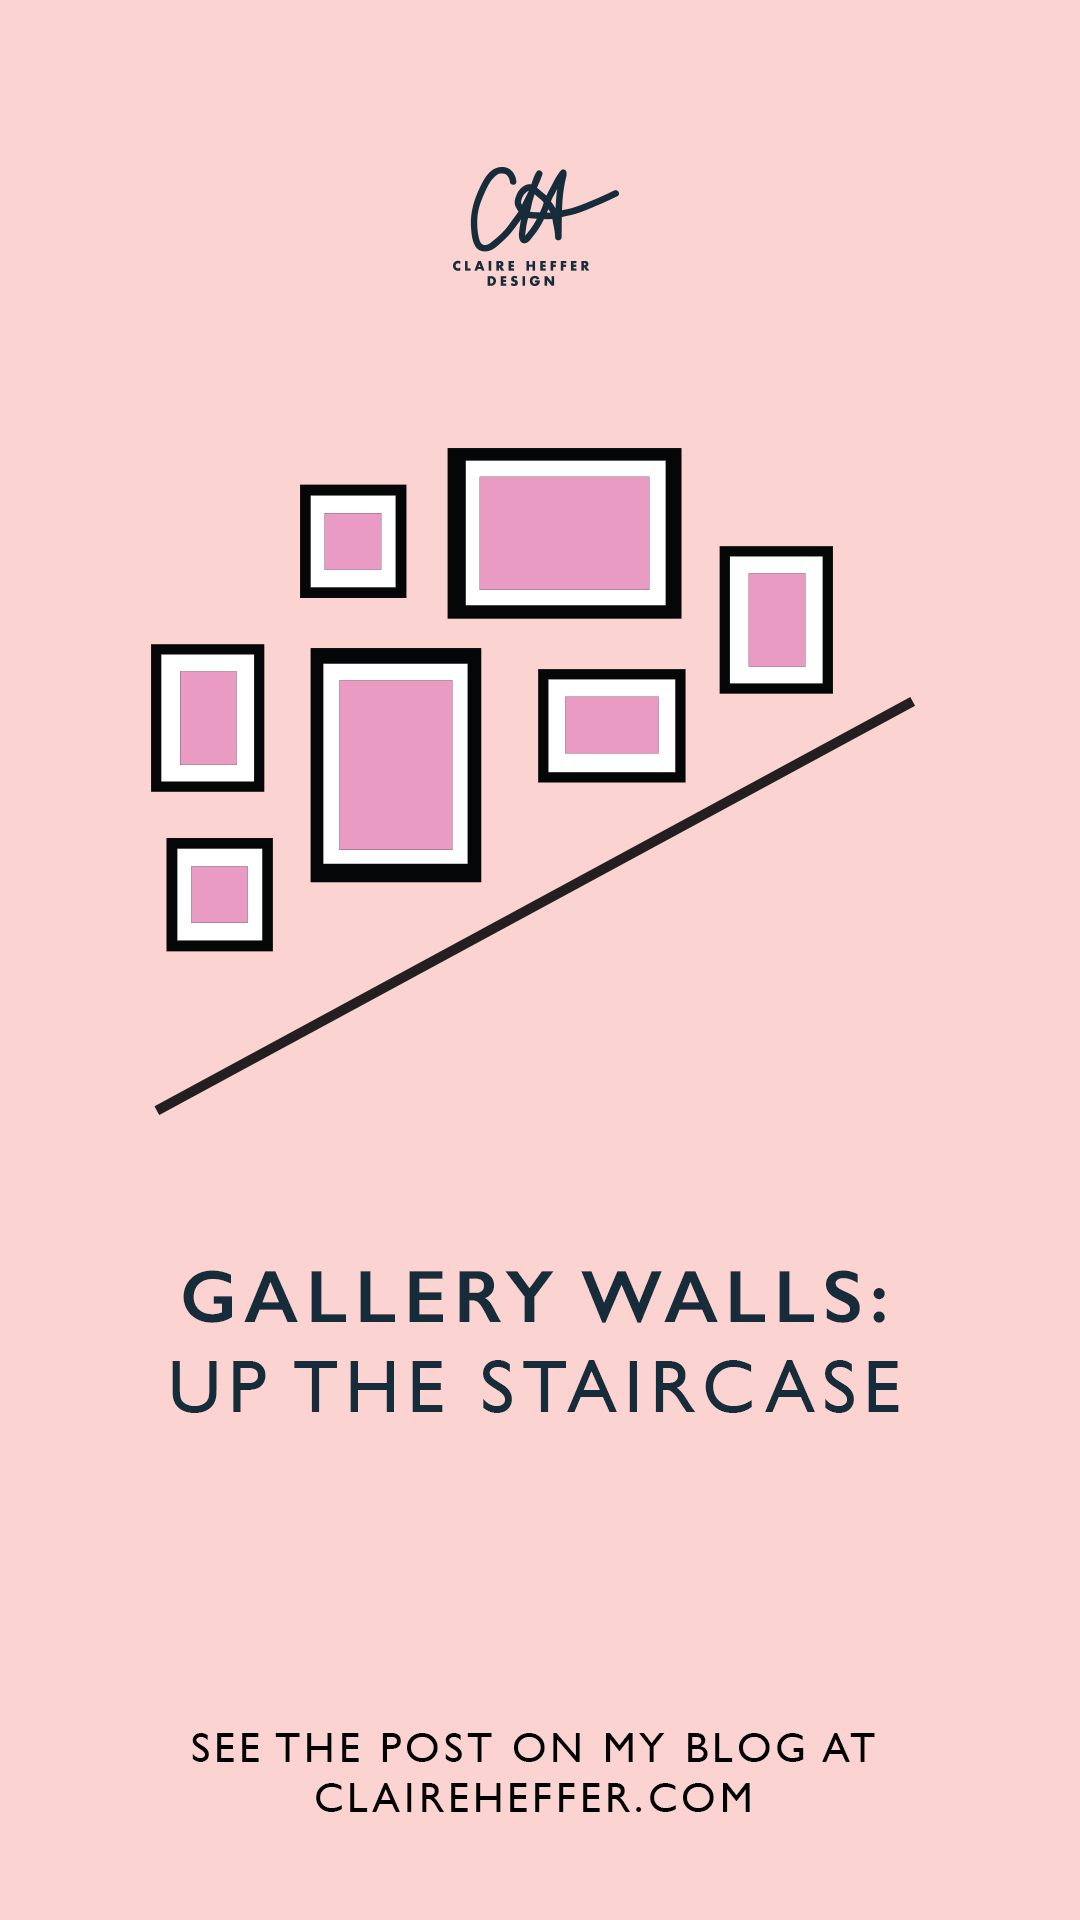 GALLERY WALLS UP THE STAIRCASE.jpg